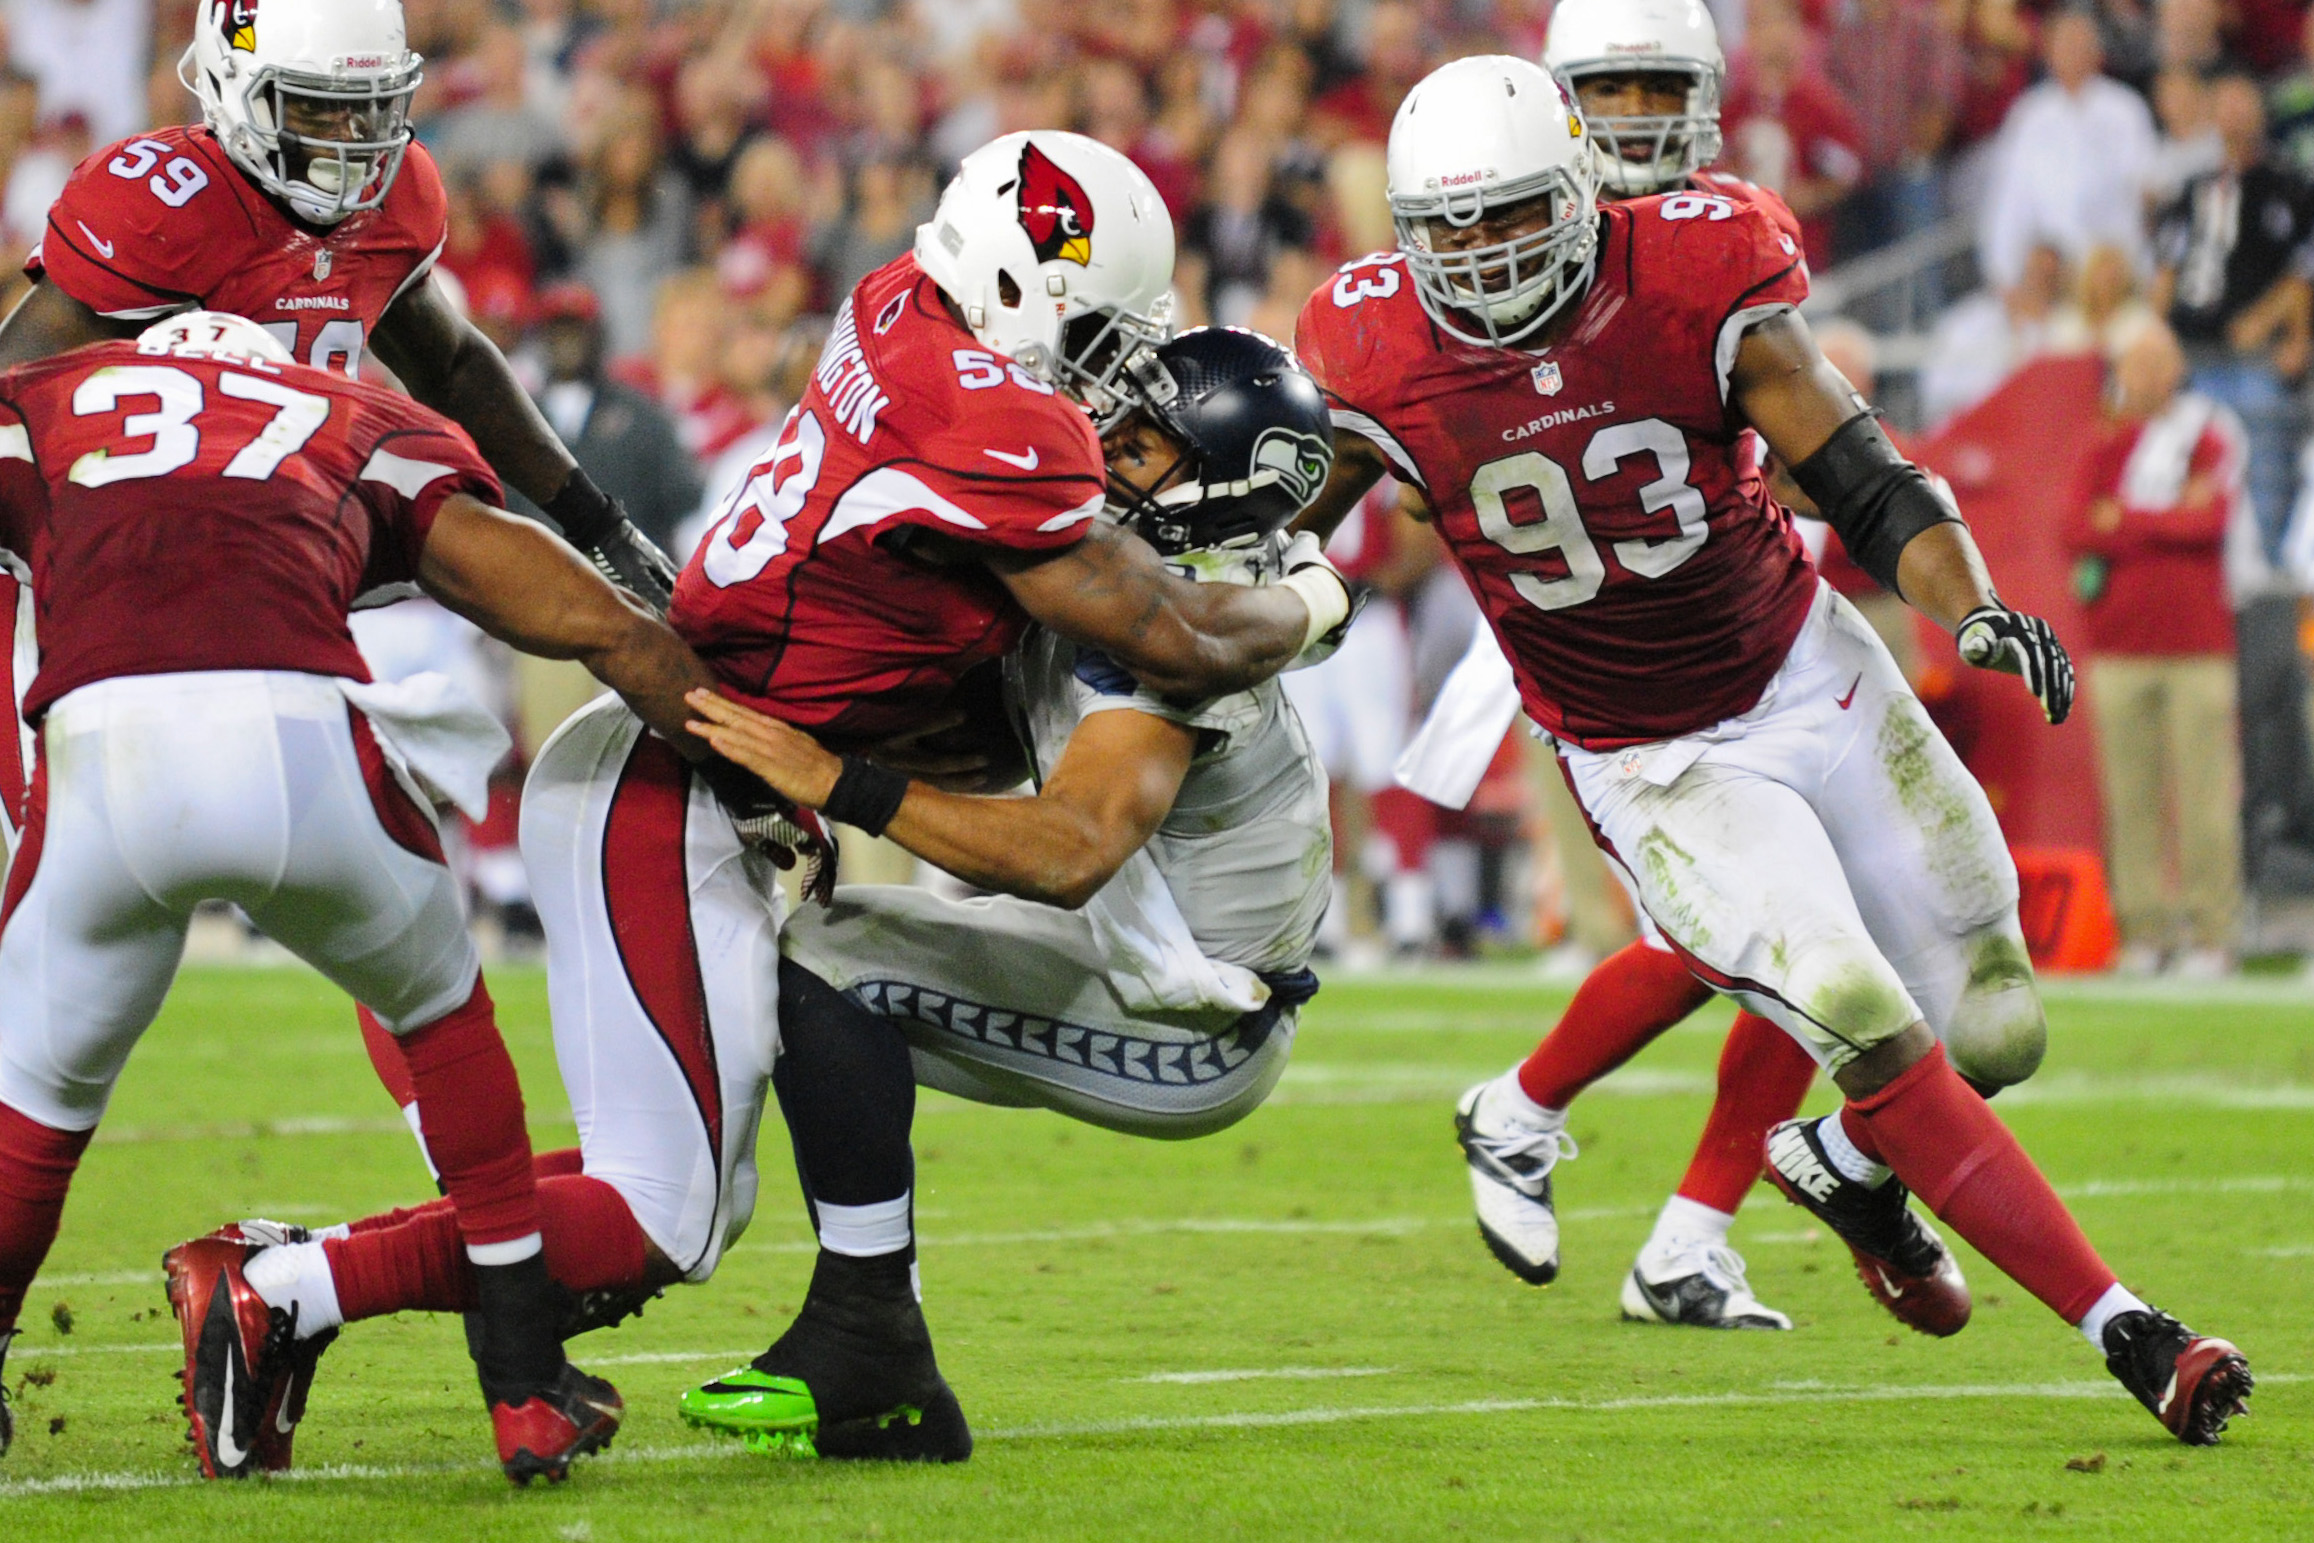 7498174-nfl-seattle-seahawks-at-arizona-cardinals